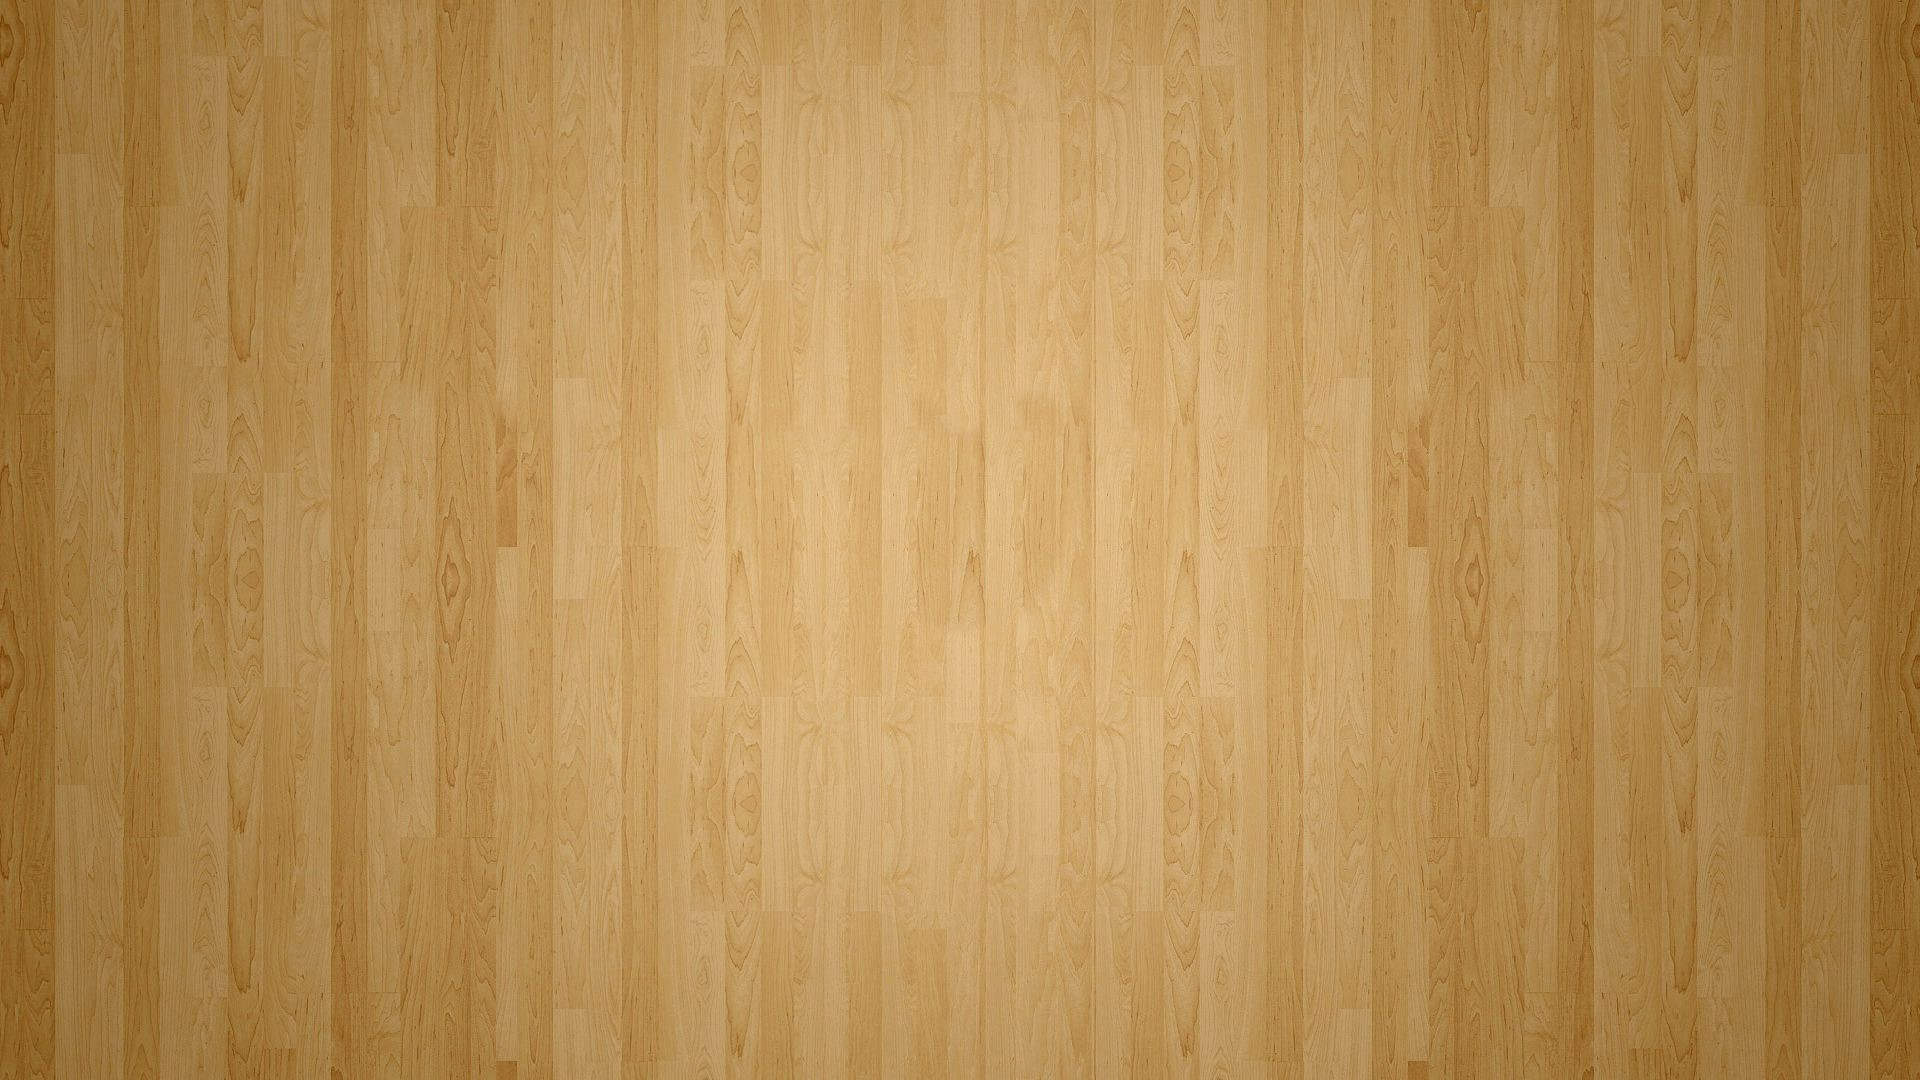 Res: 1920x1080, HD Quality Wallpaper | Collection: Photography,  Wooden Floor